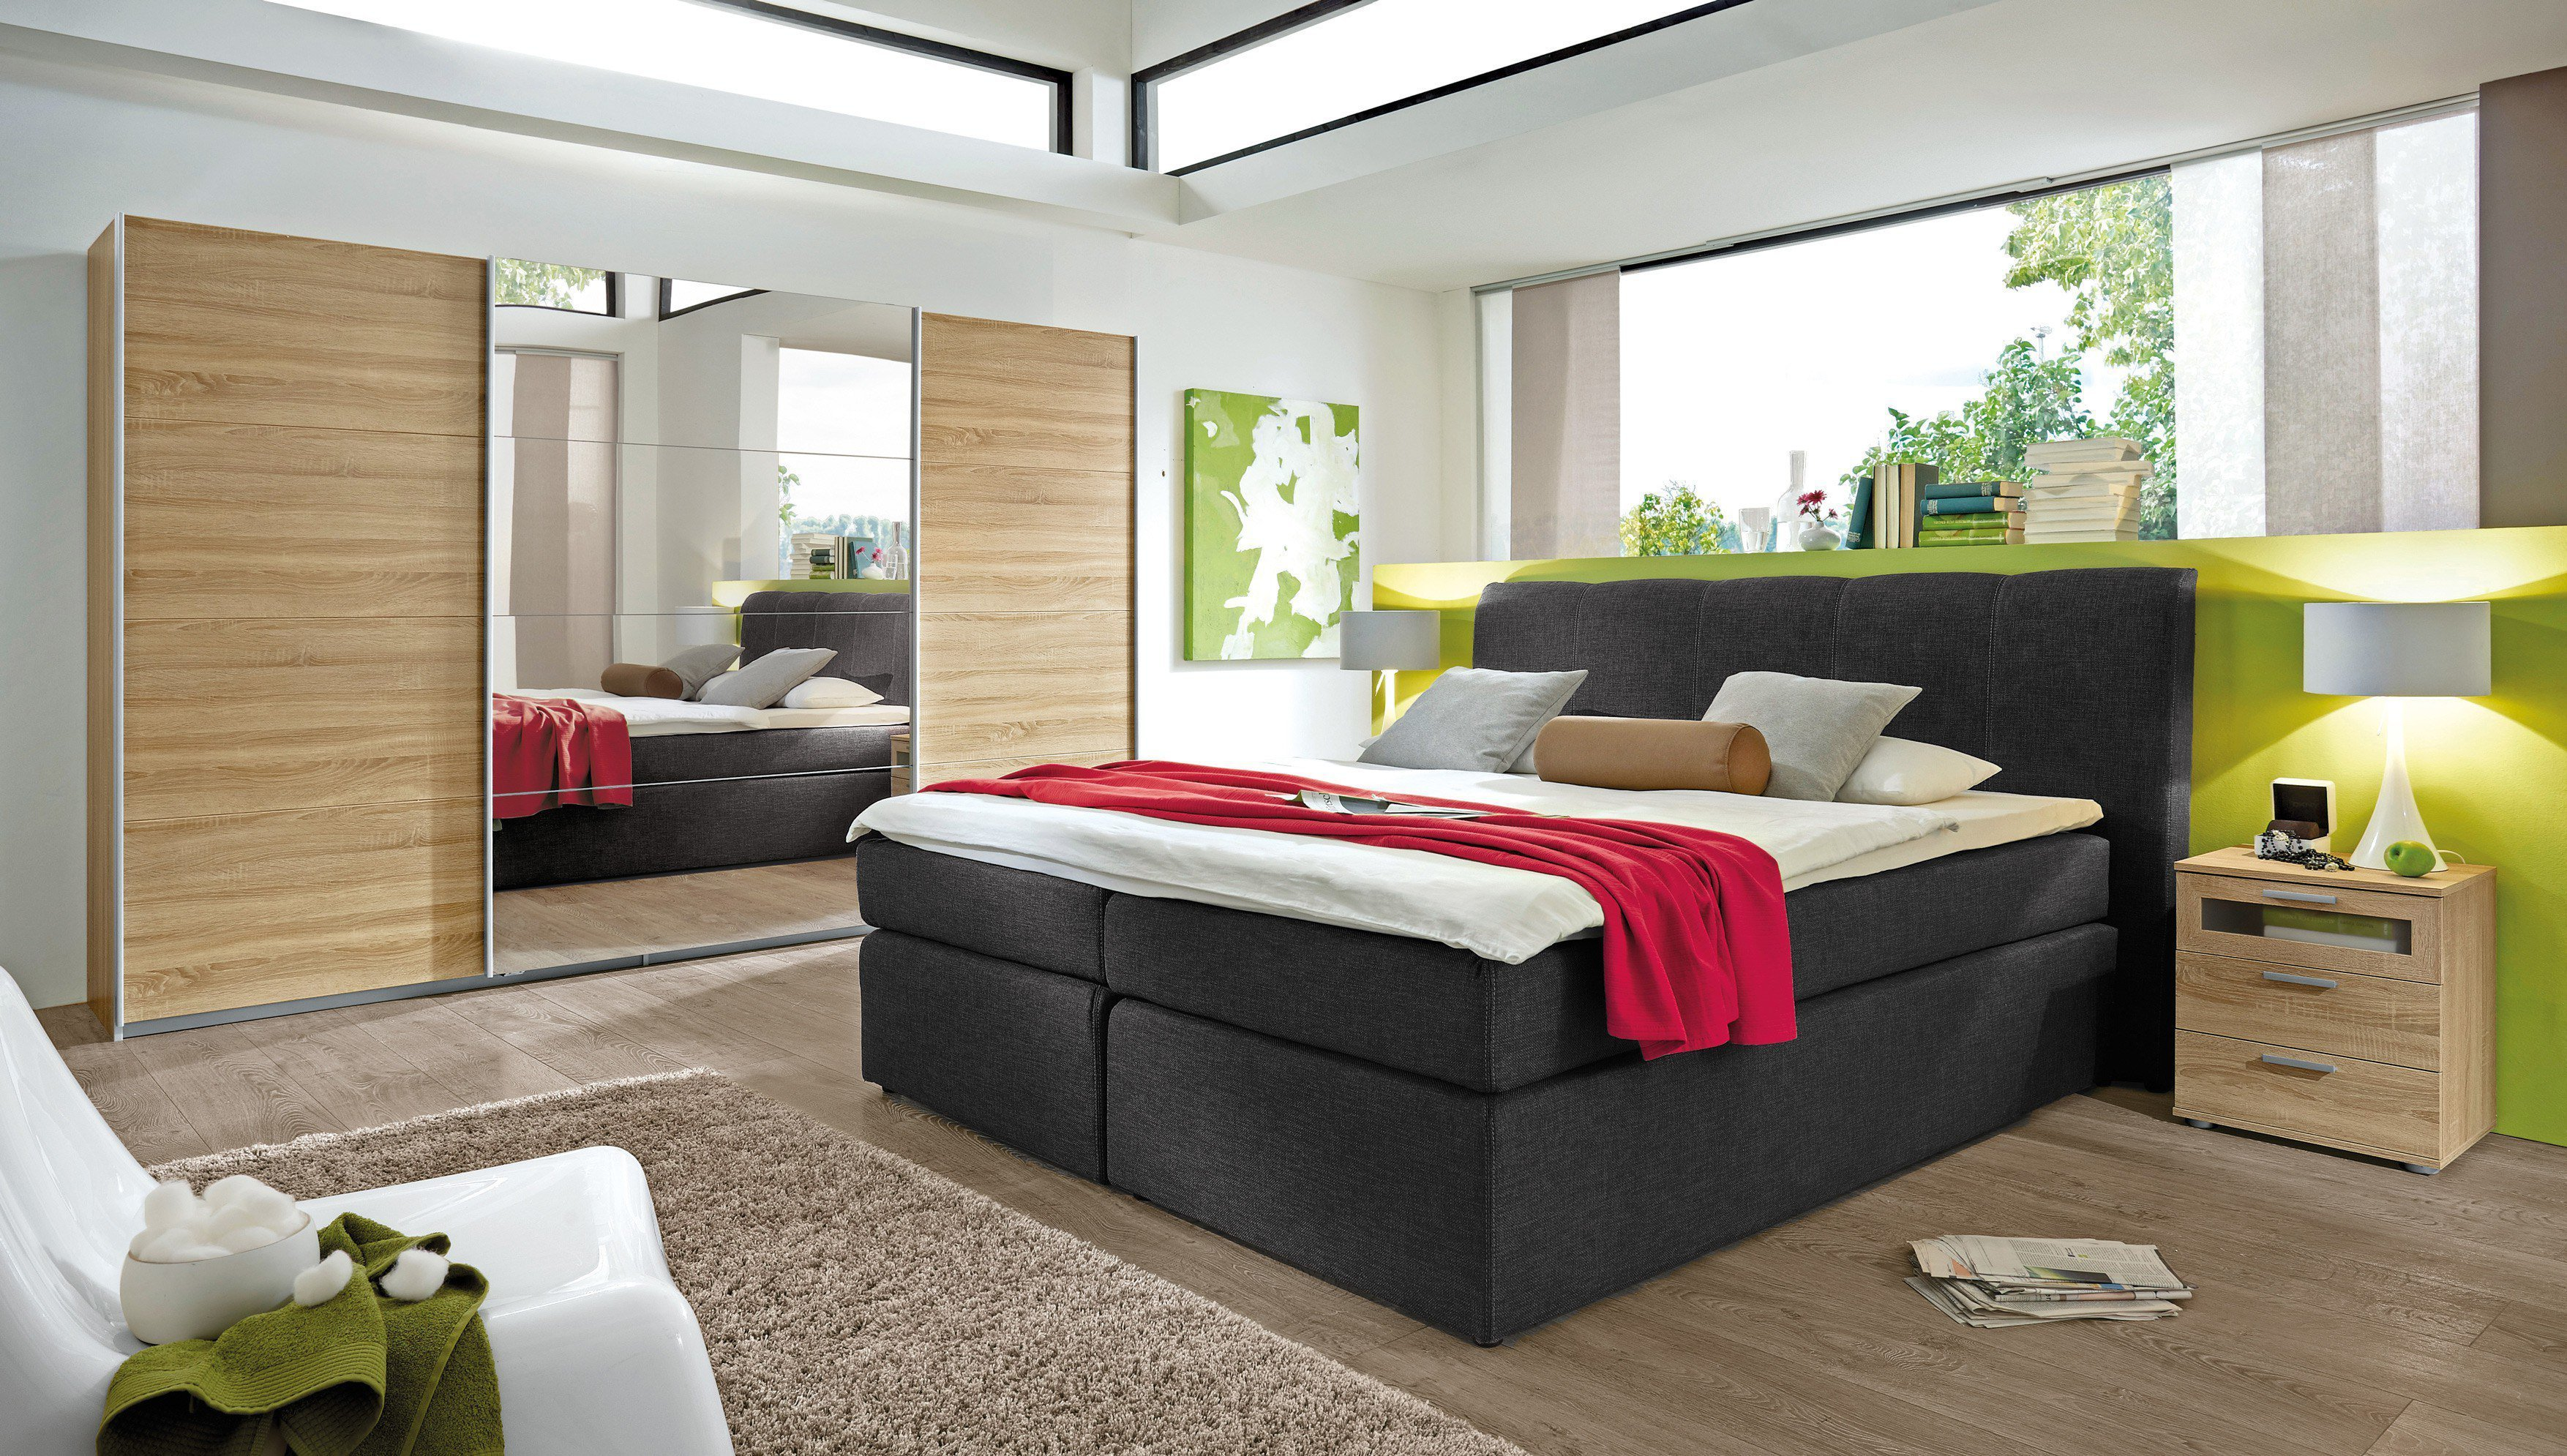 jockenh fer boxspringbett heaven anthrazit m bel letz. Black Bedroom Furniture Sets. Home Design Ideas